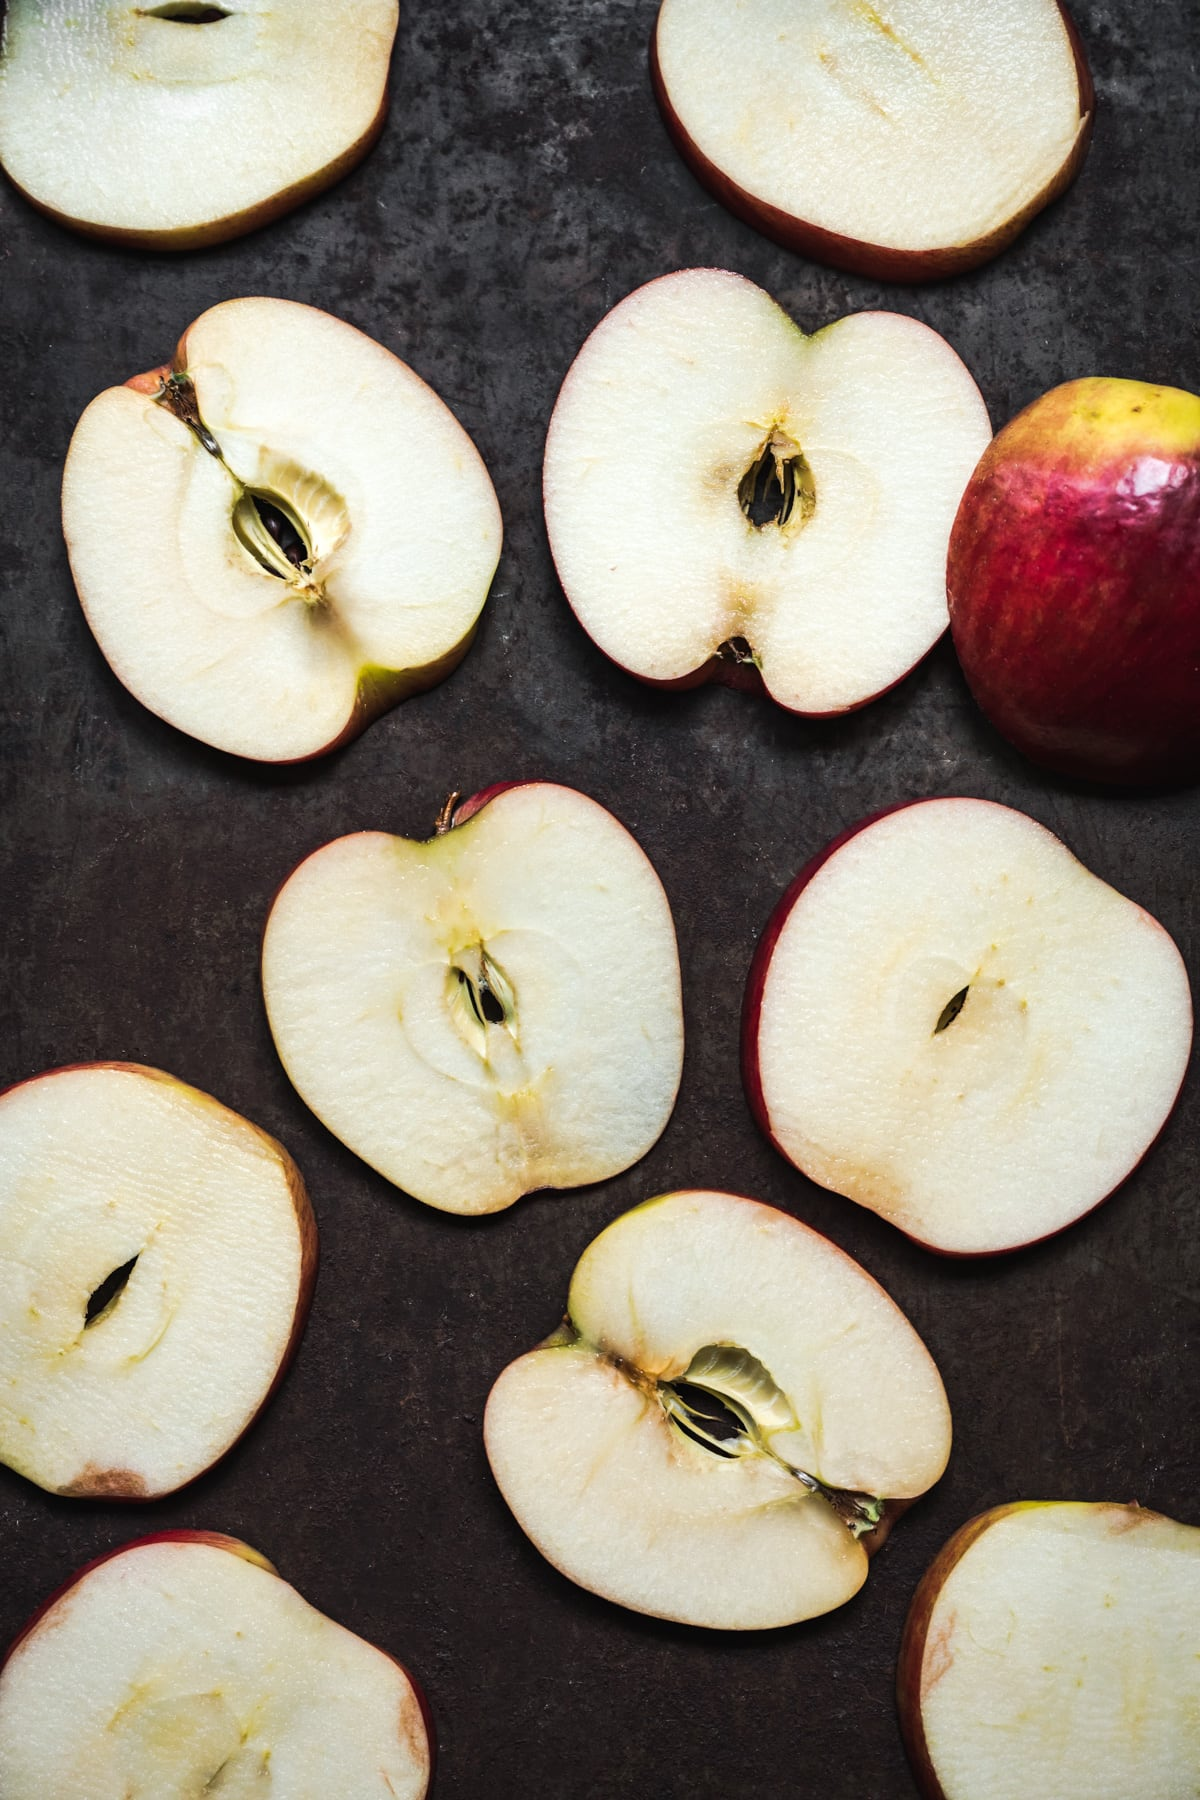 overhead view of apple slices on a sheet pan.